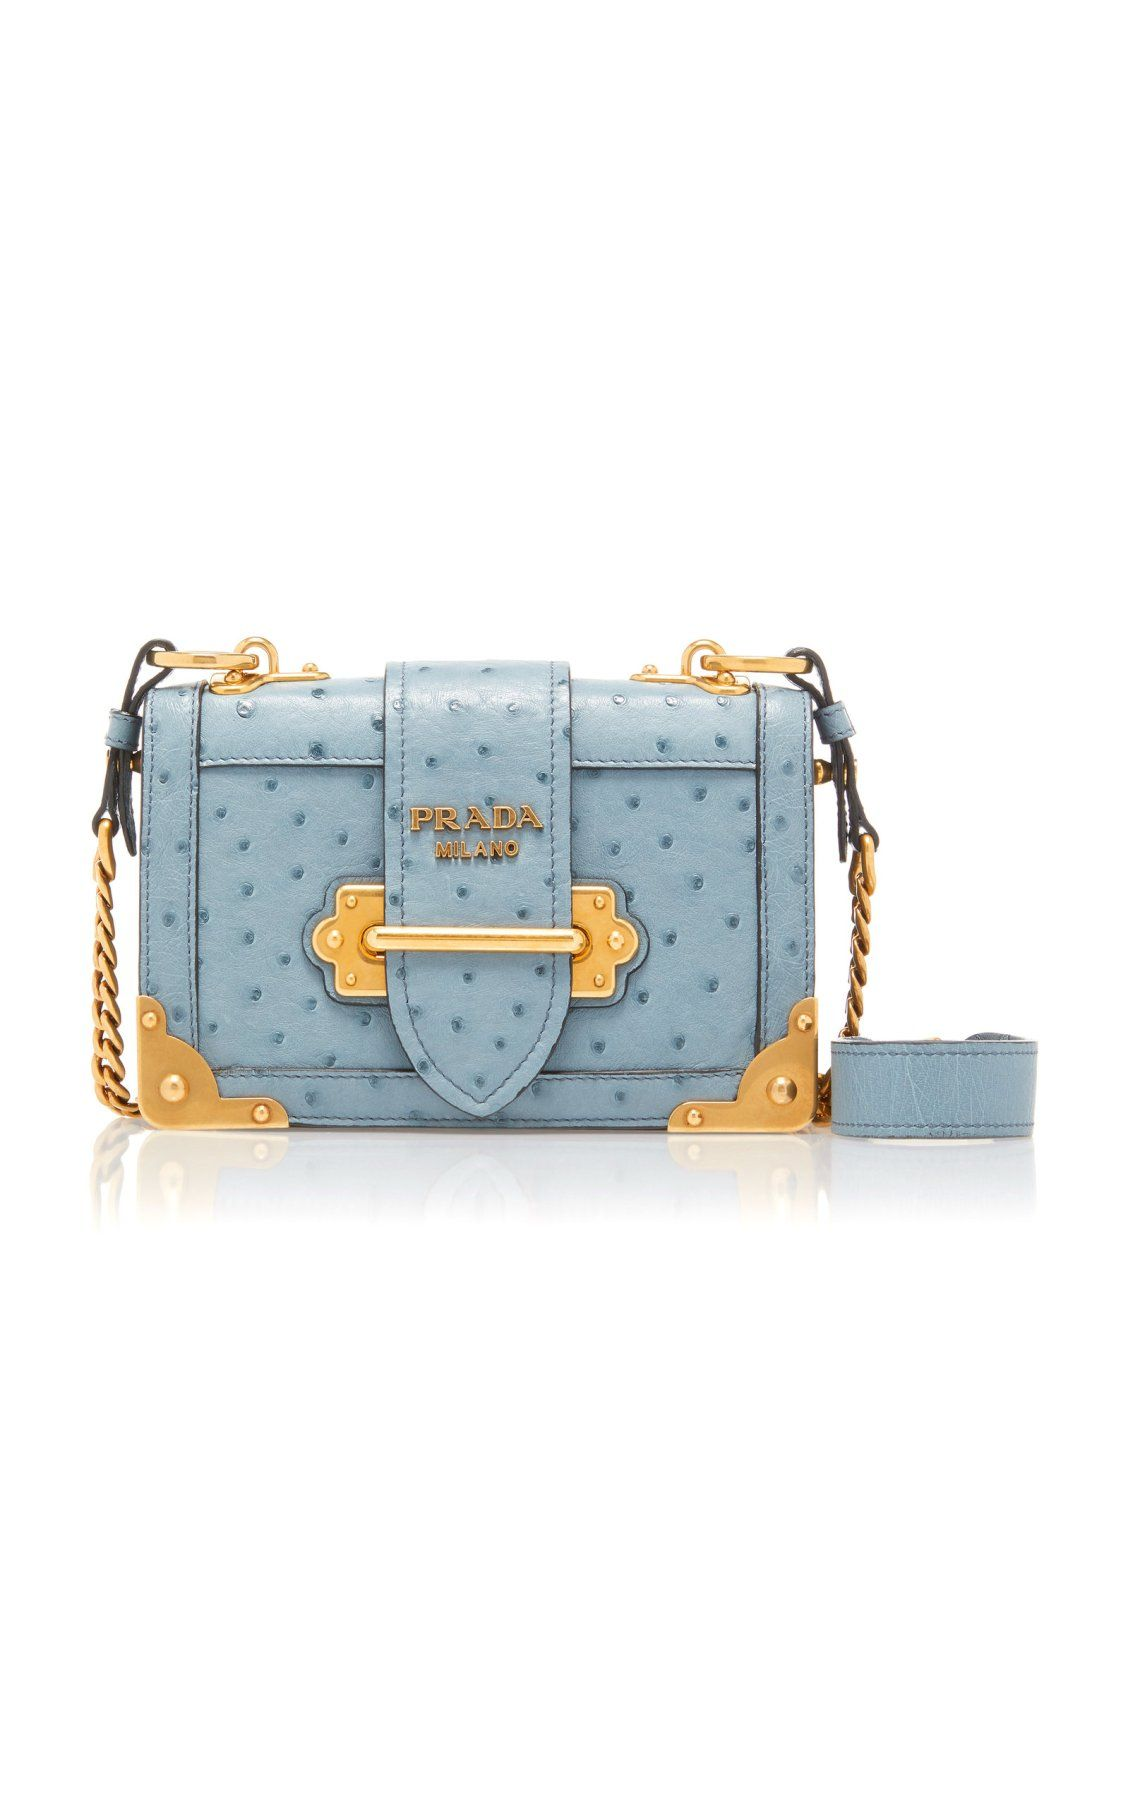 a4b5baf76d31 Ostrich Cahier Shoulder Bag by Prada | Accessories in 2019 | Bags ...